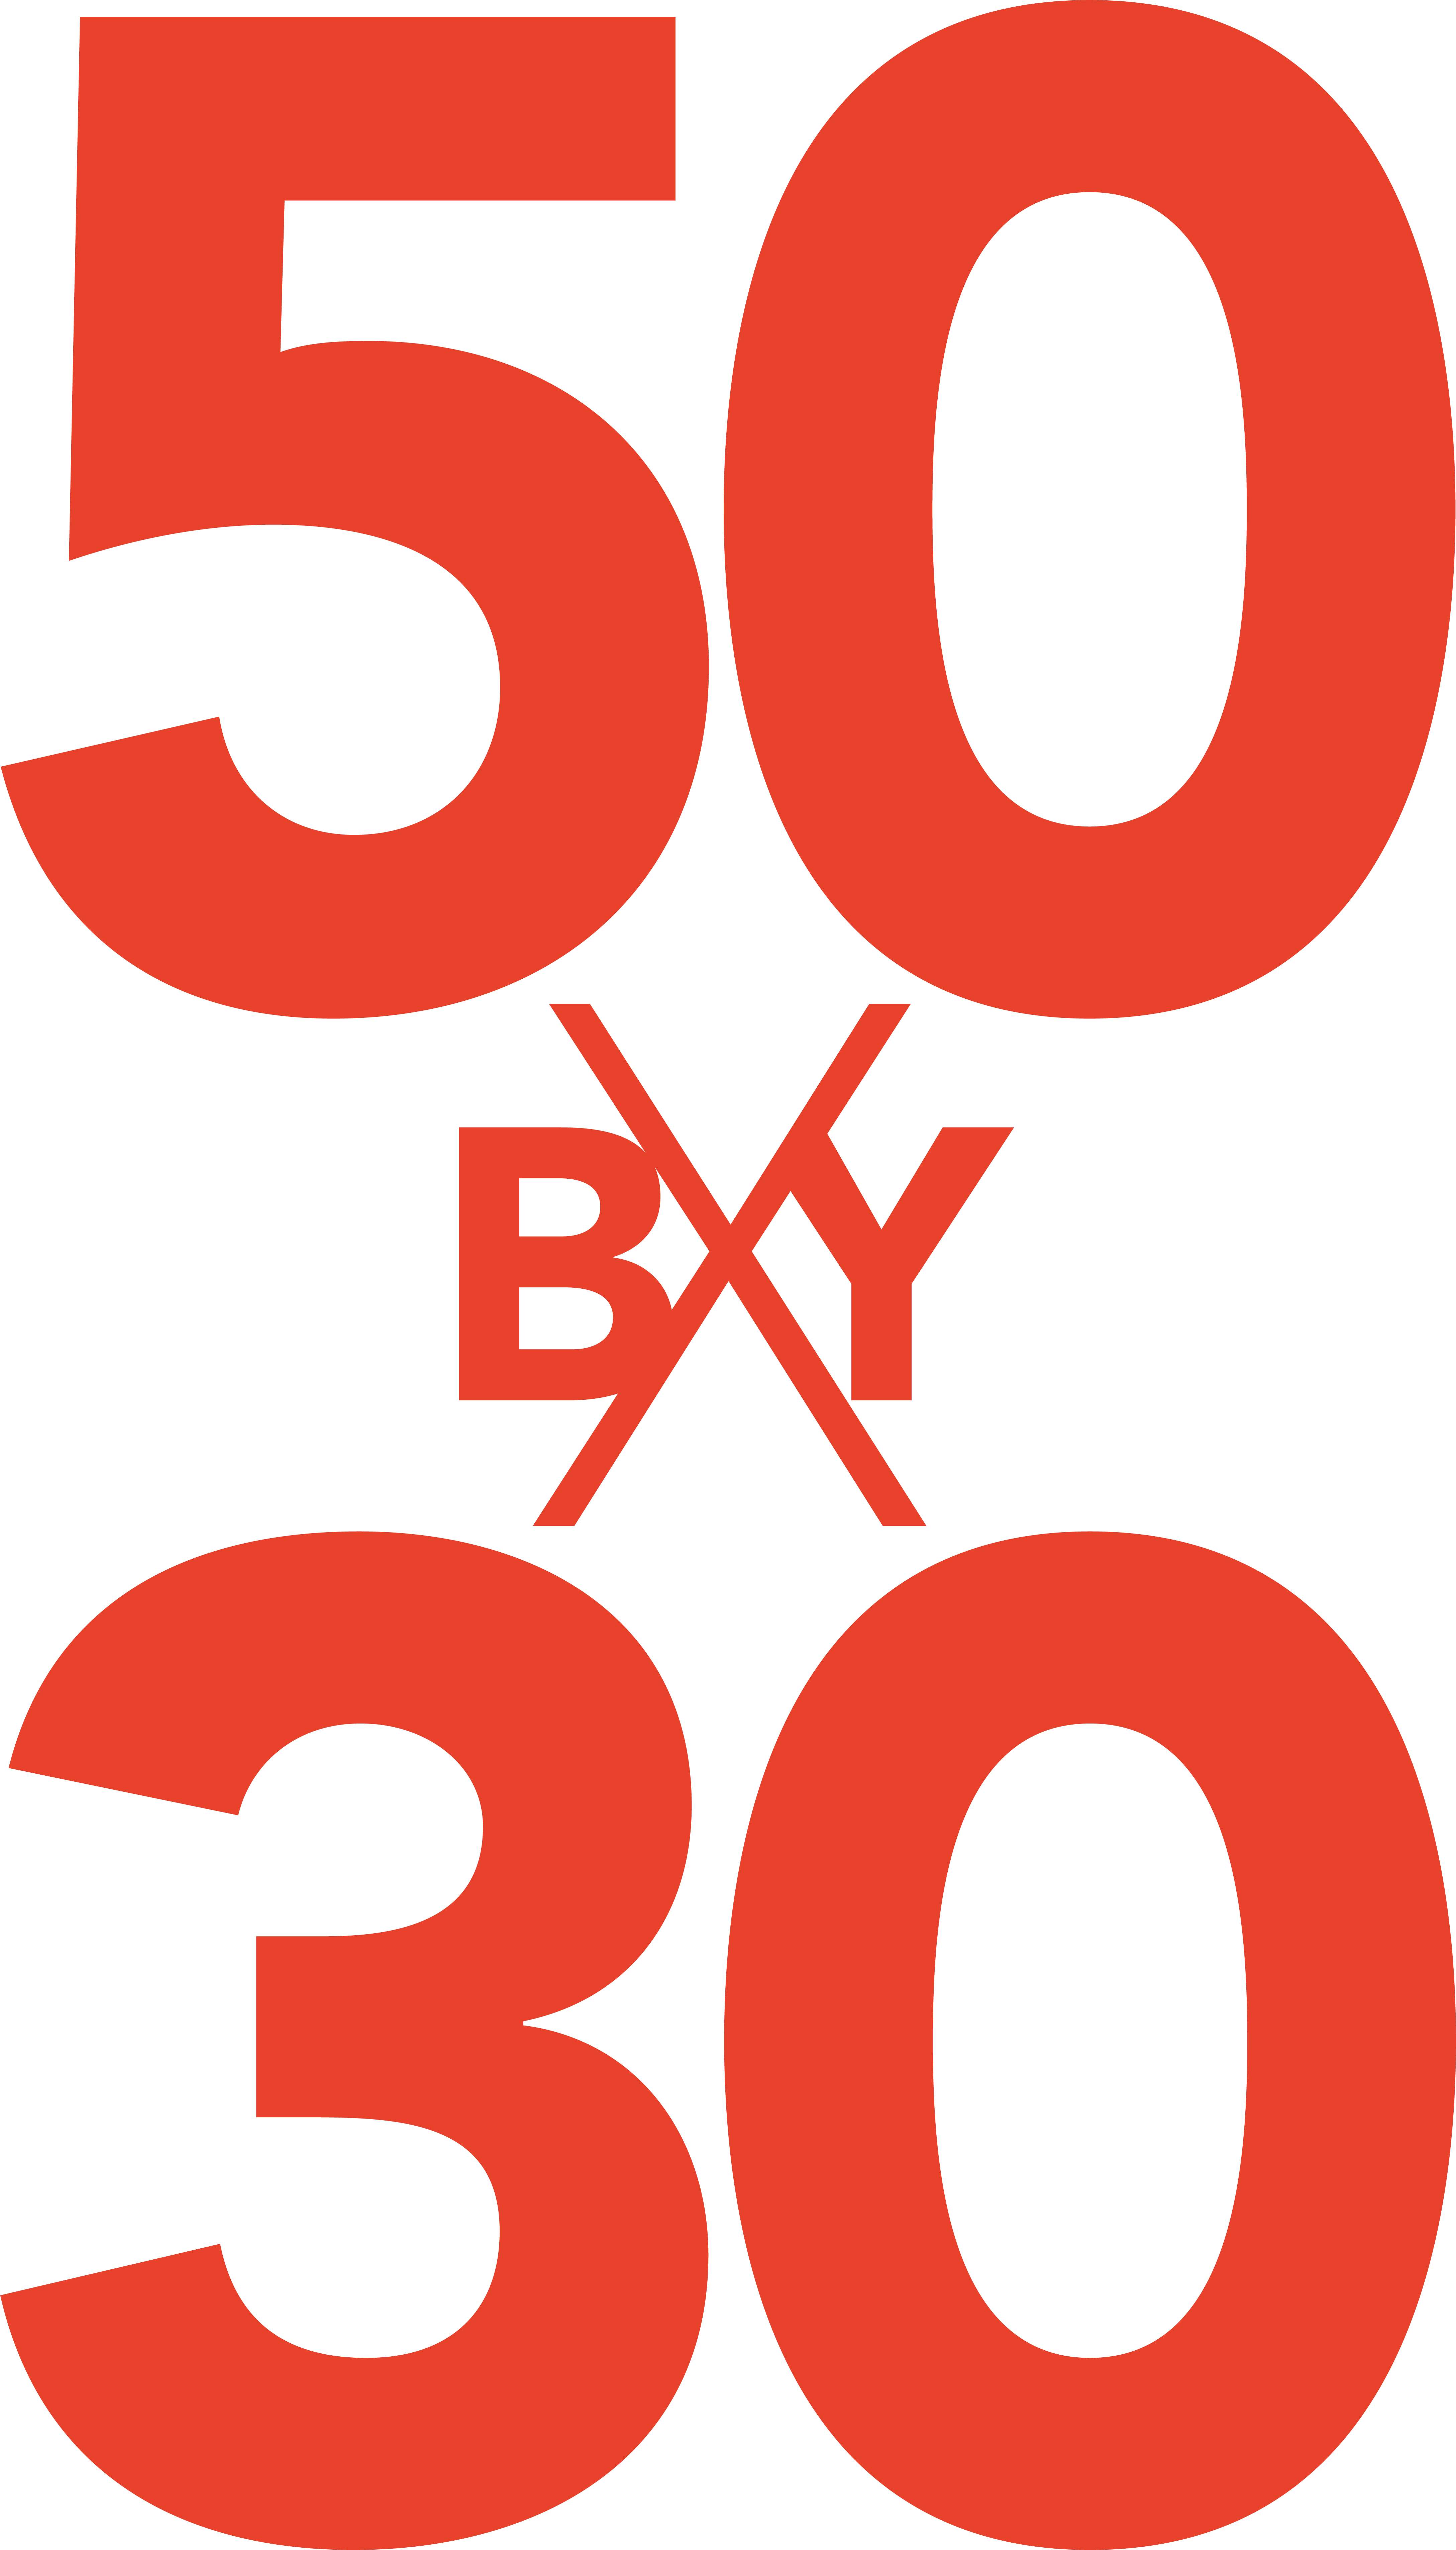 50by30 RED